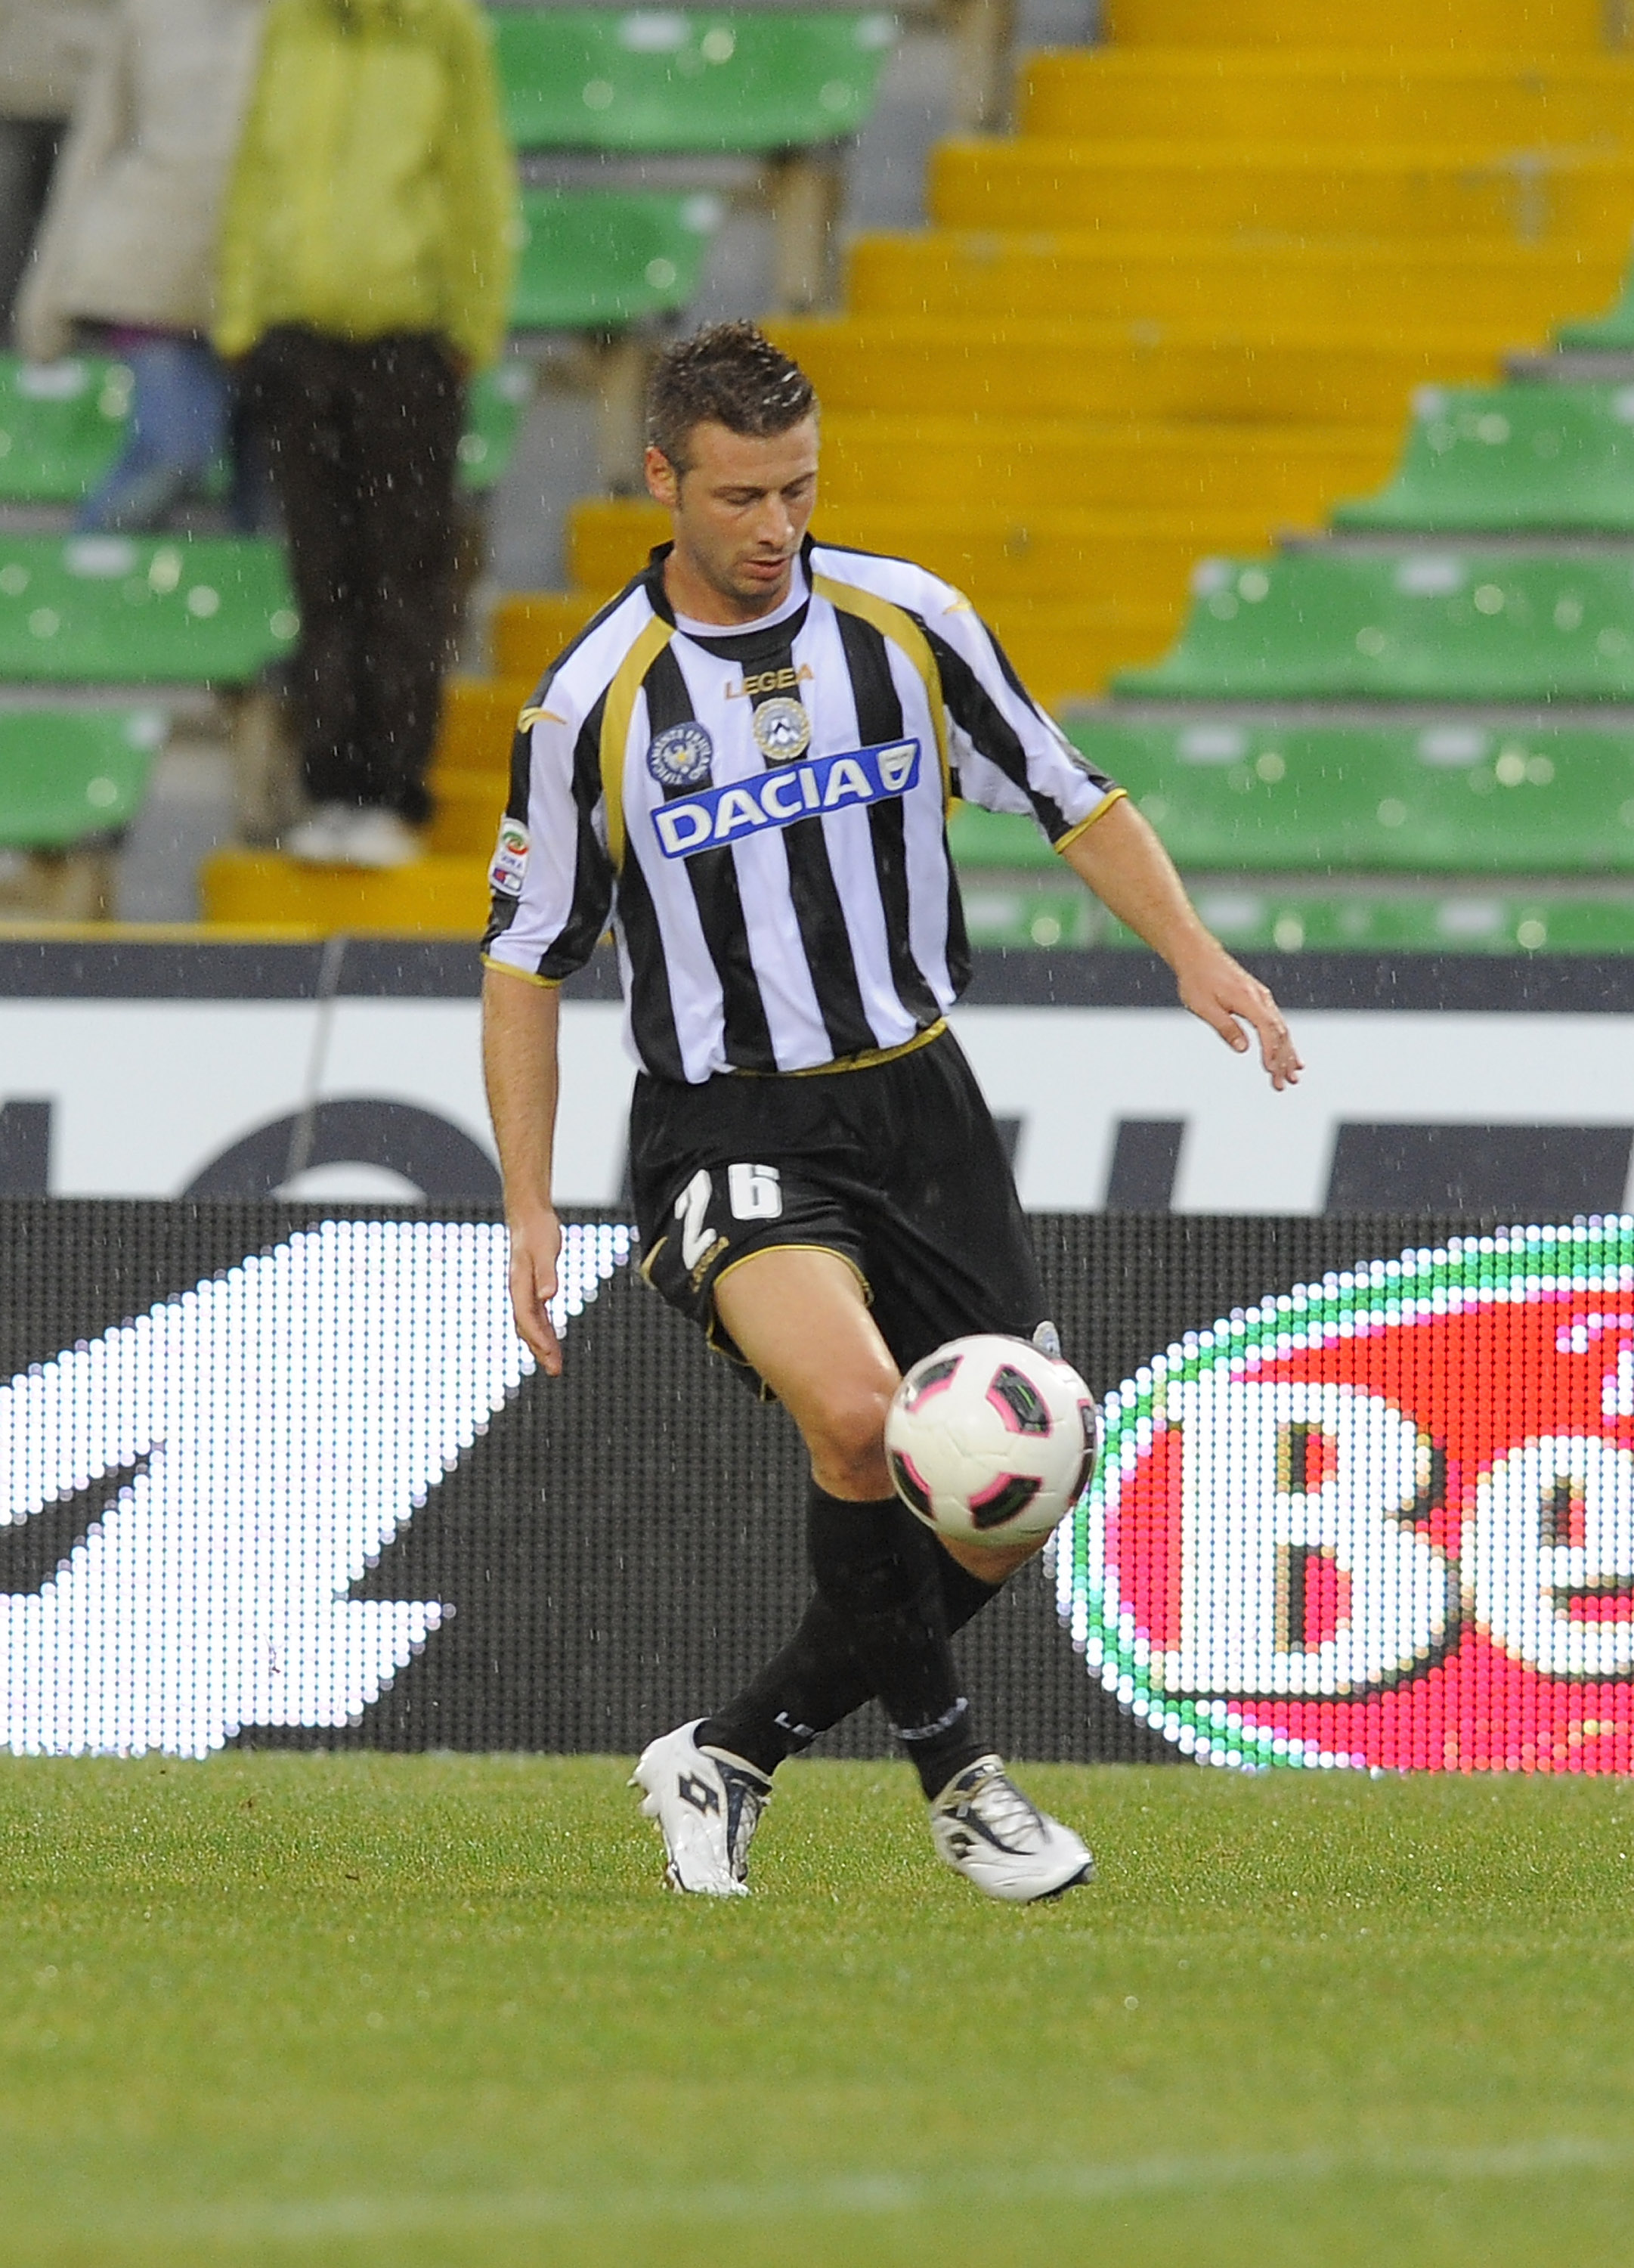 Pasquale grew up with Inter and now plays left back for Udinese.